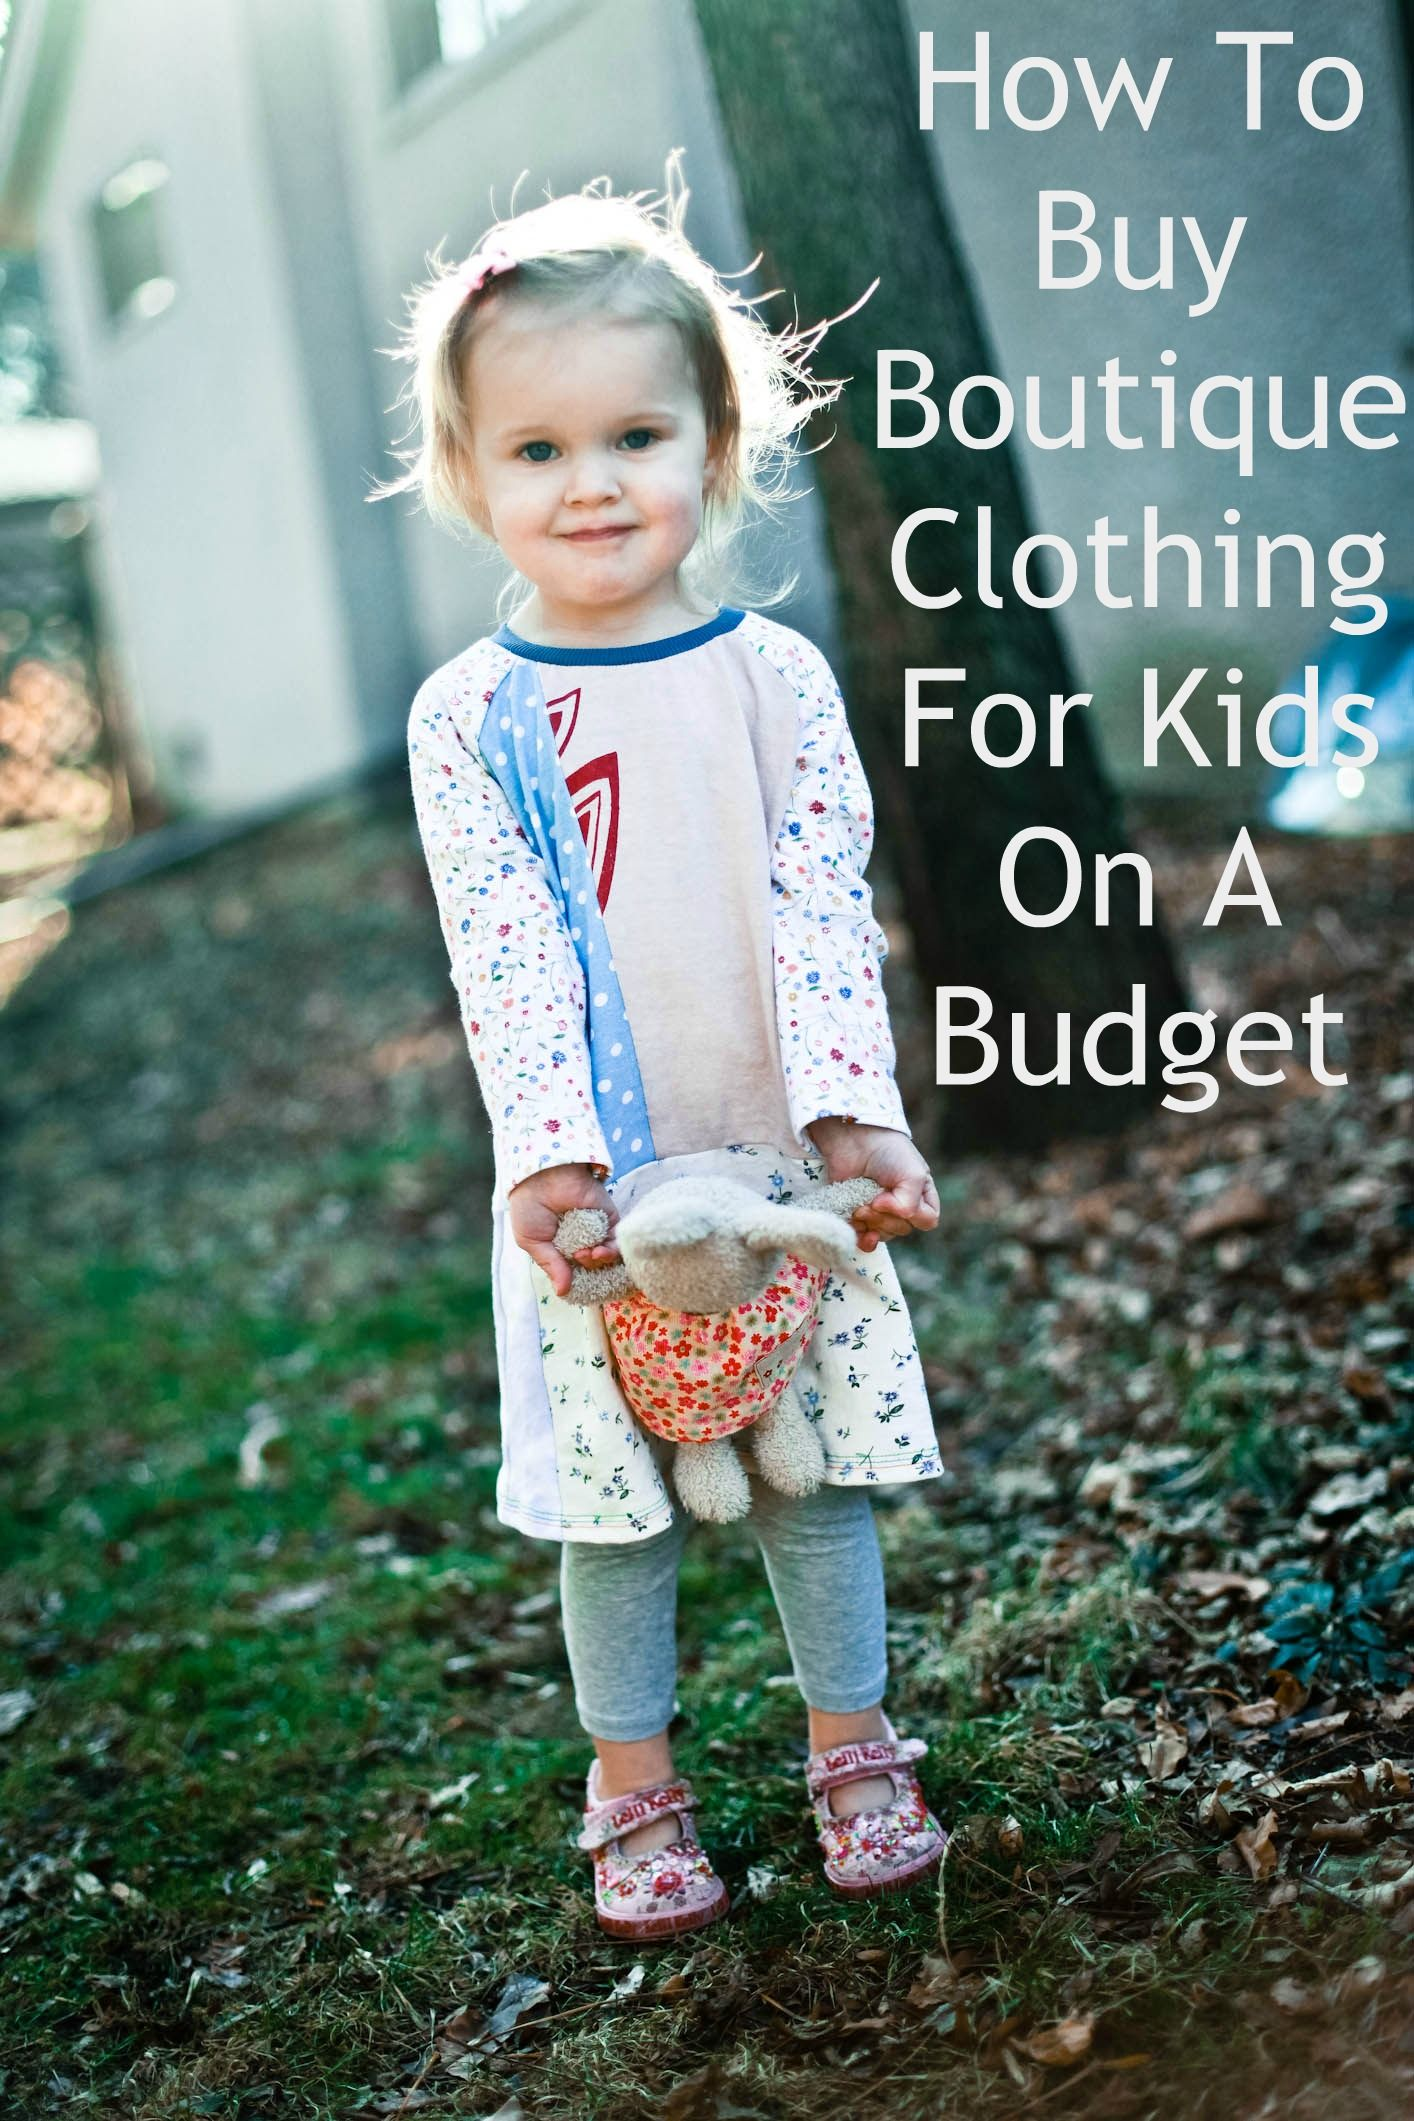 Children's clothing, shopping for clothing on a budget